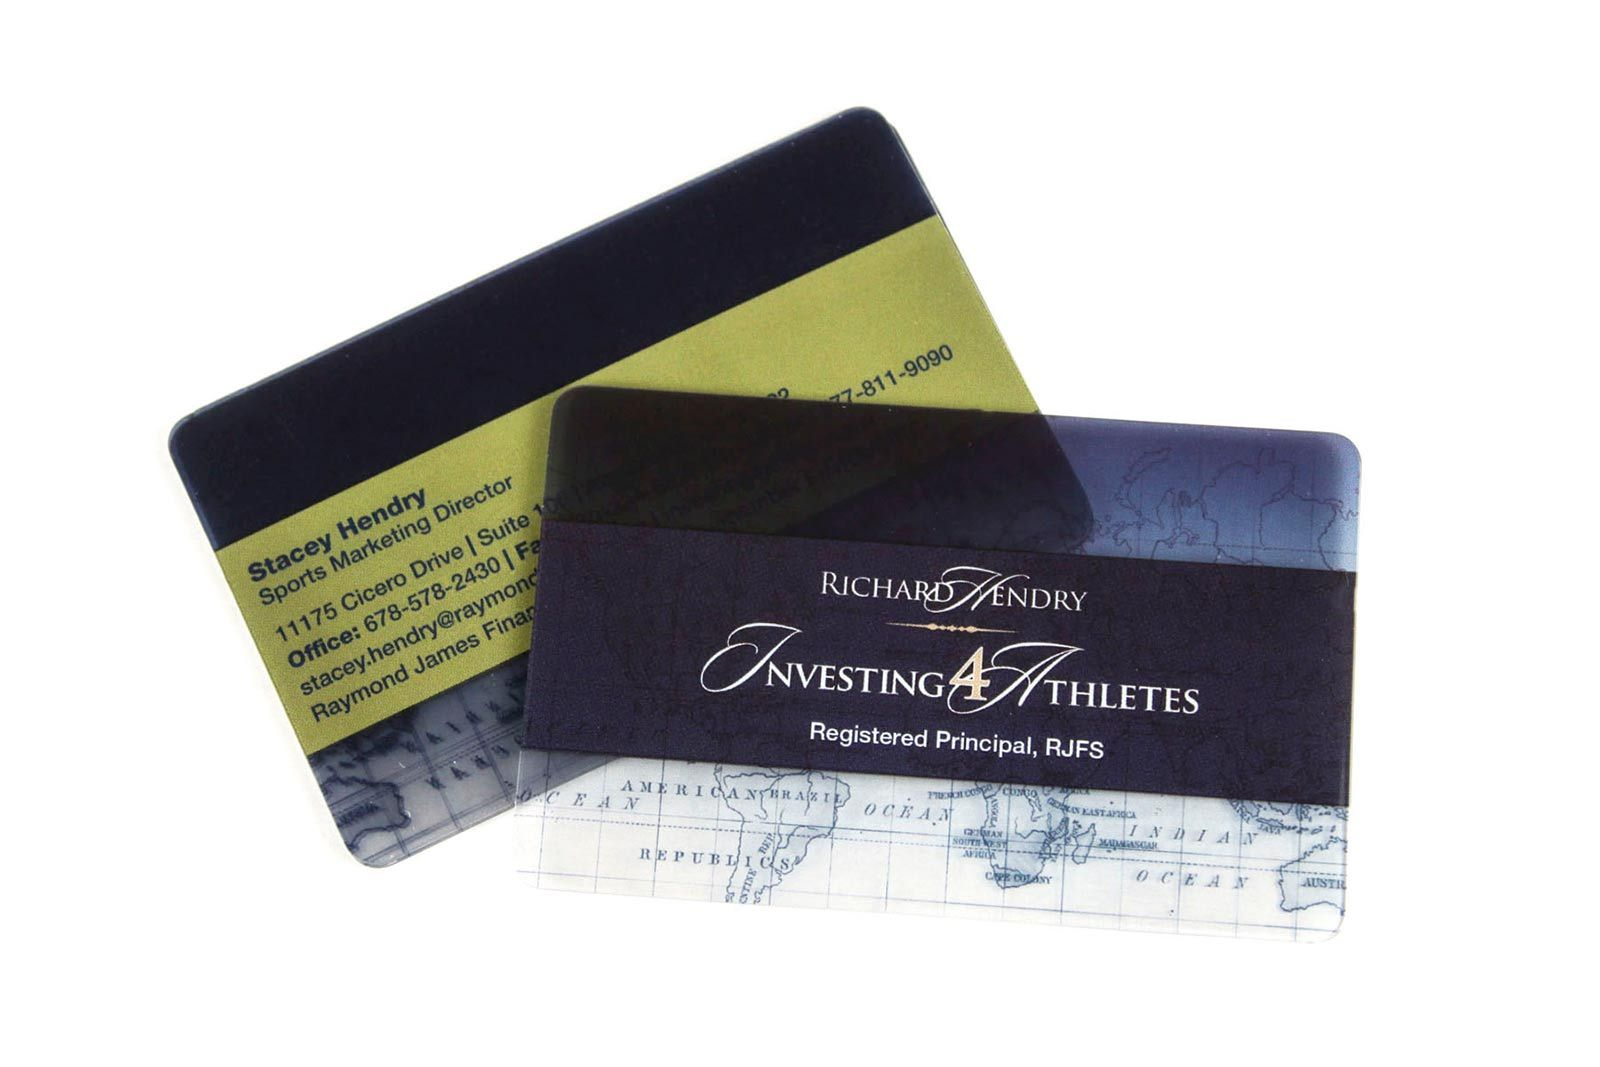 unique clear plastic business cards for investment specialists and ...